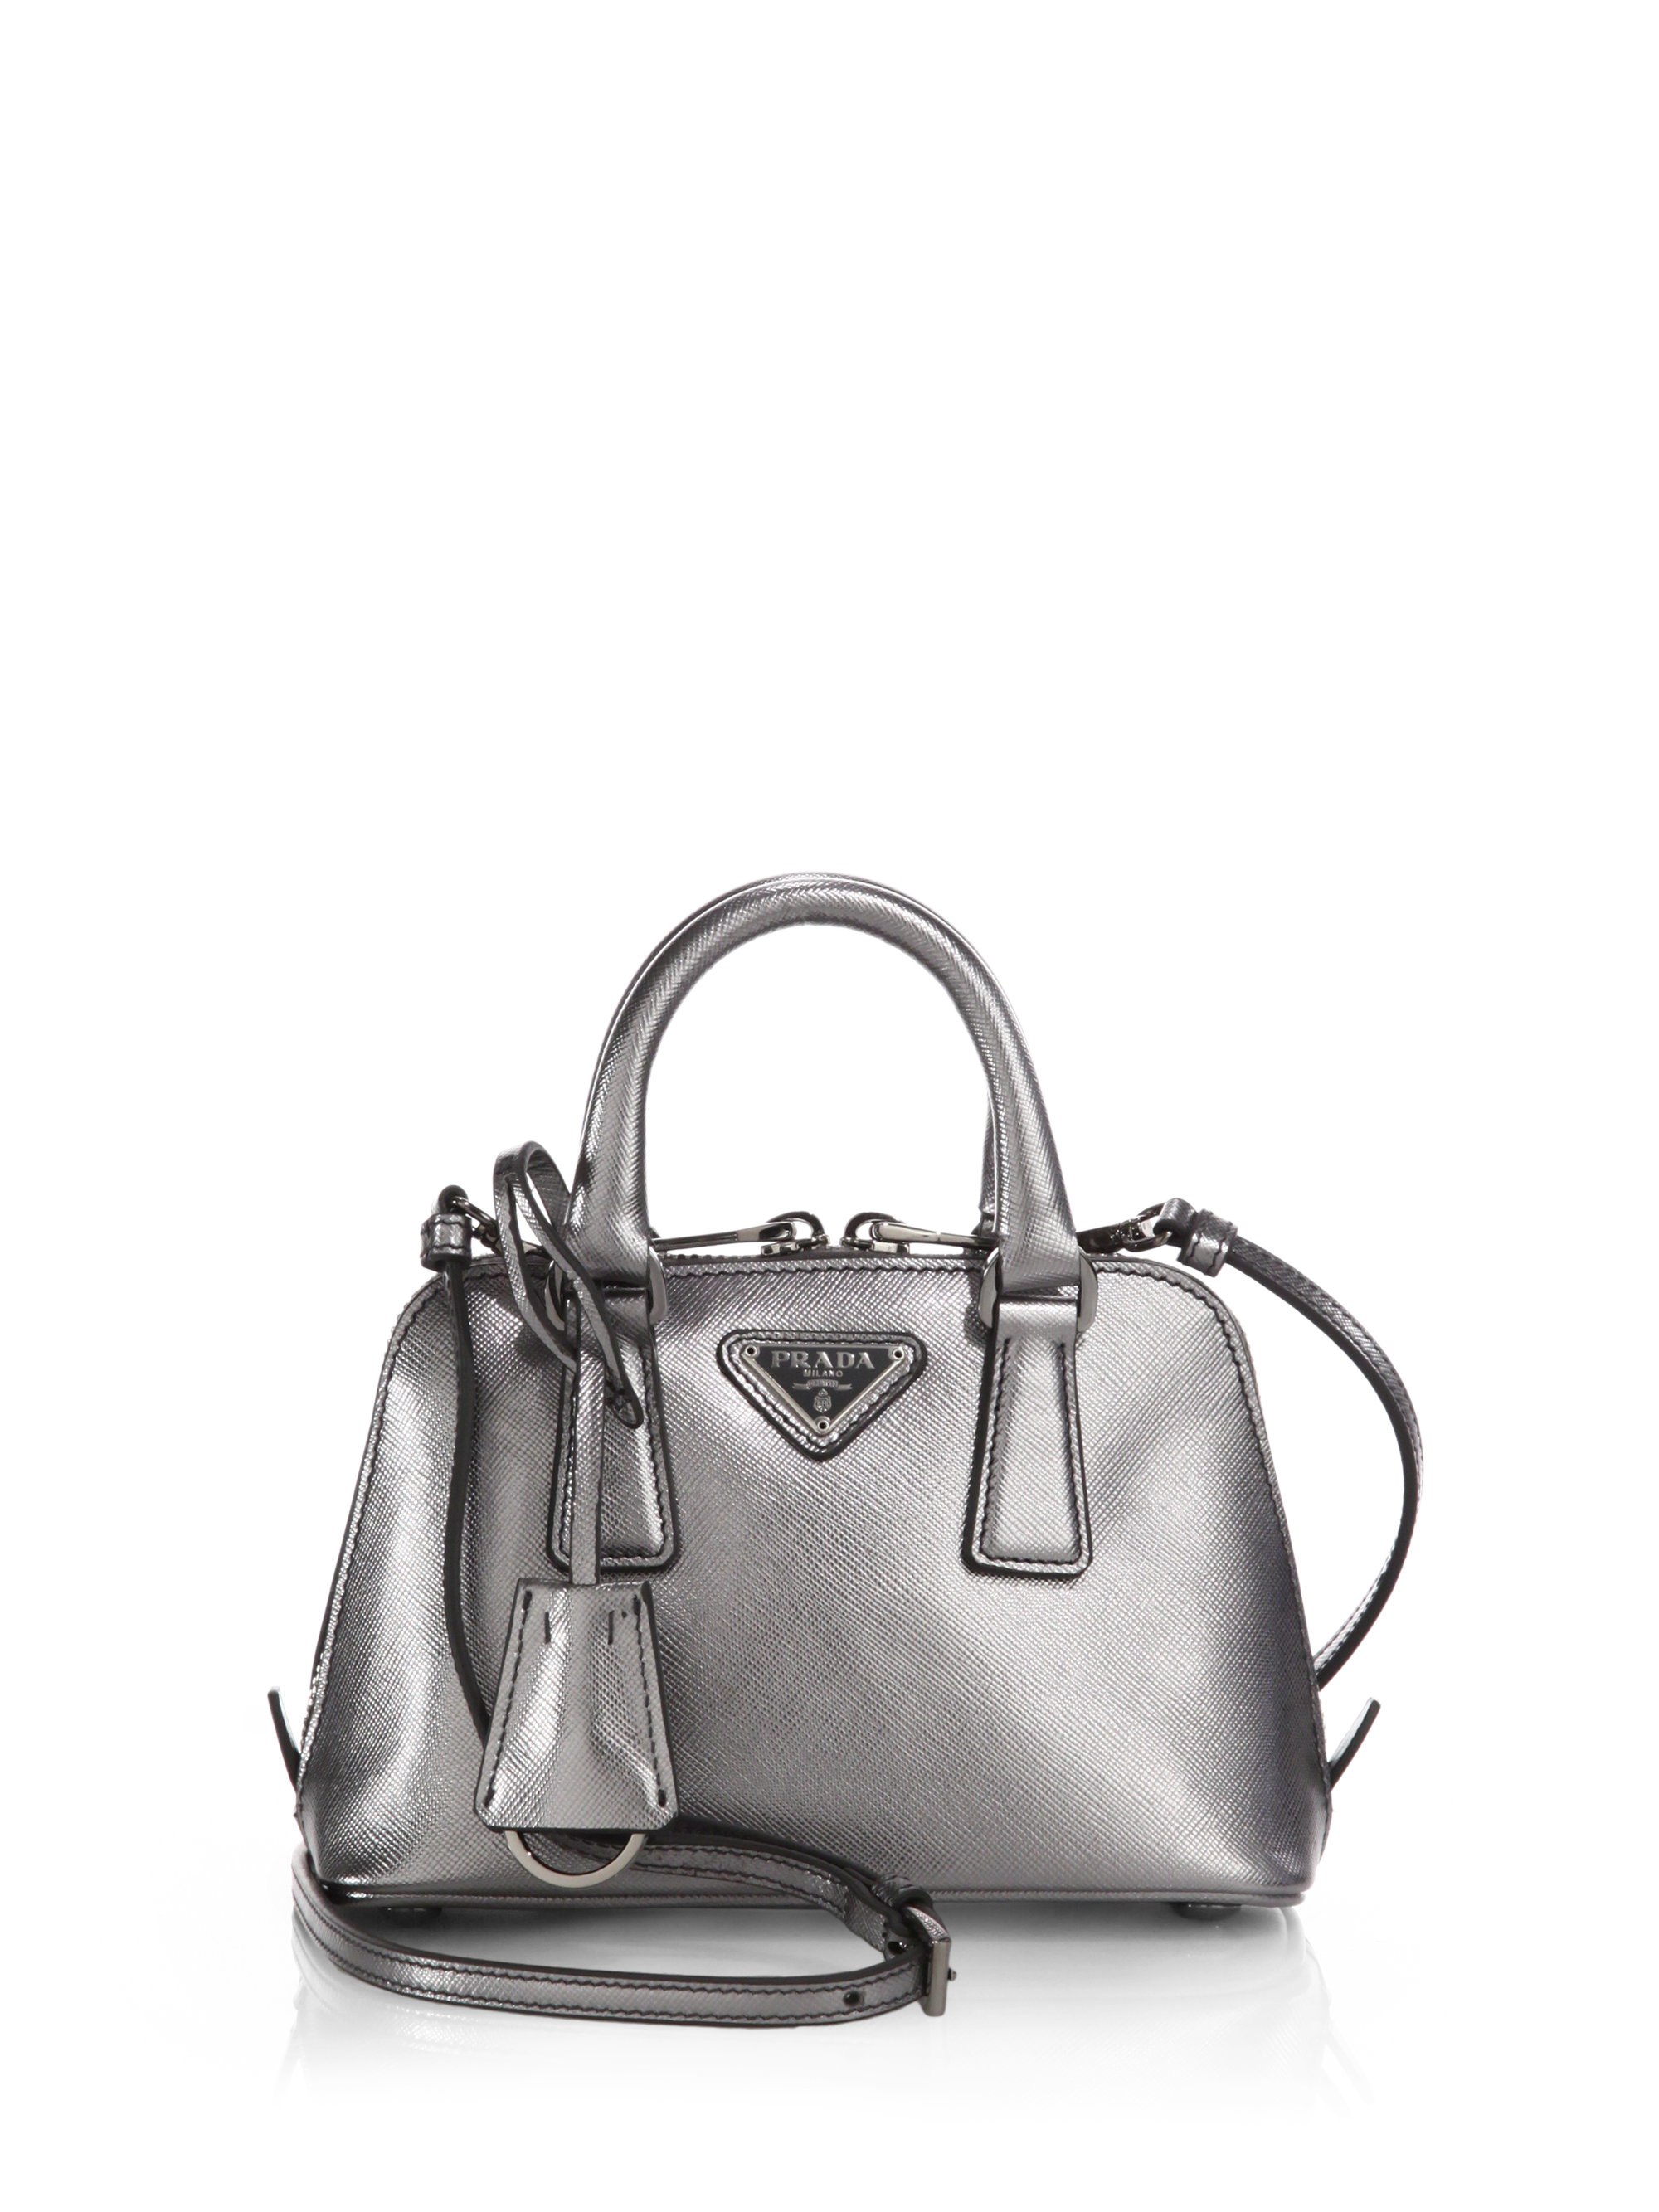 654326348e61 Prada Saffiano Lux Mini Promenade Bag in Metallic - Lyst